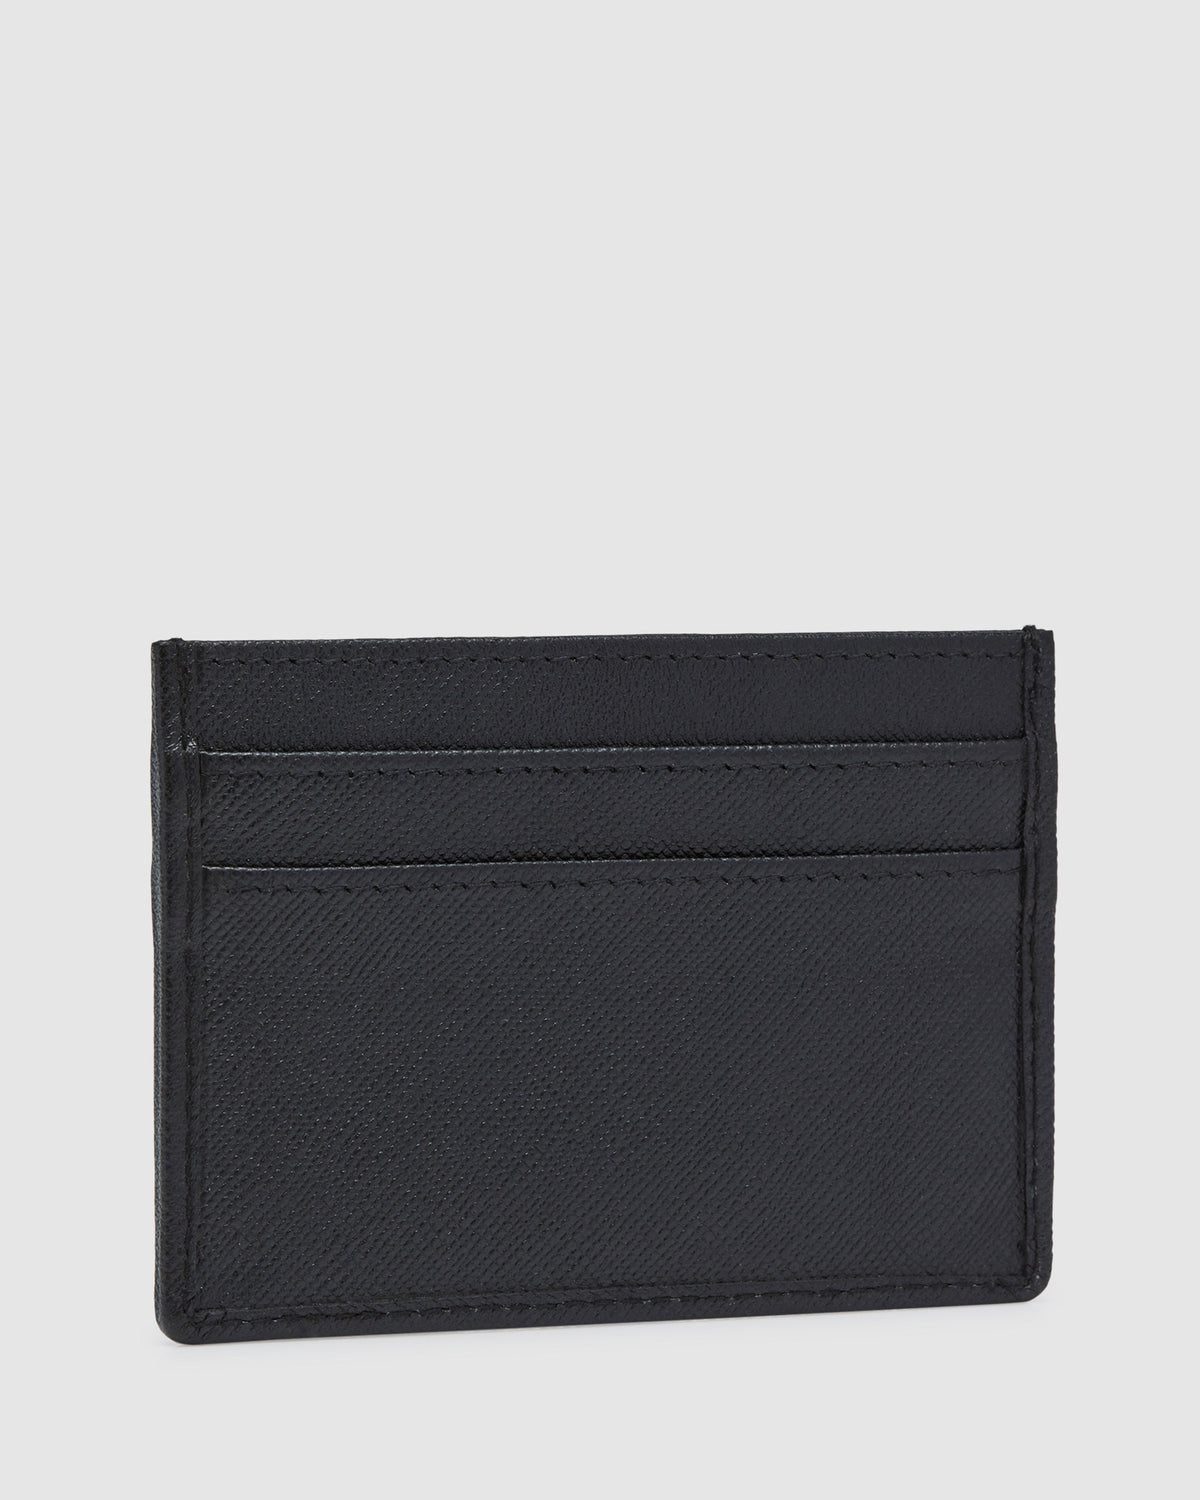 WAGNER LEATHER CARD HOLDER BLACK